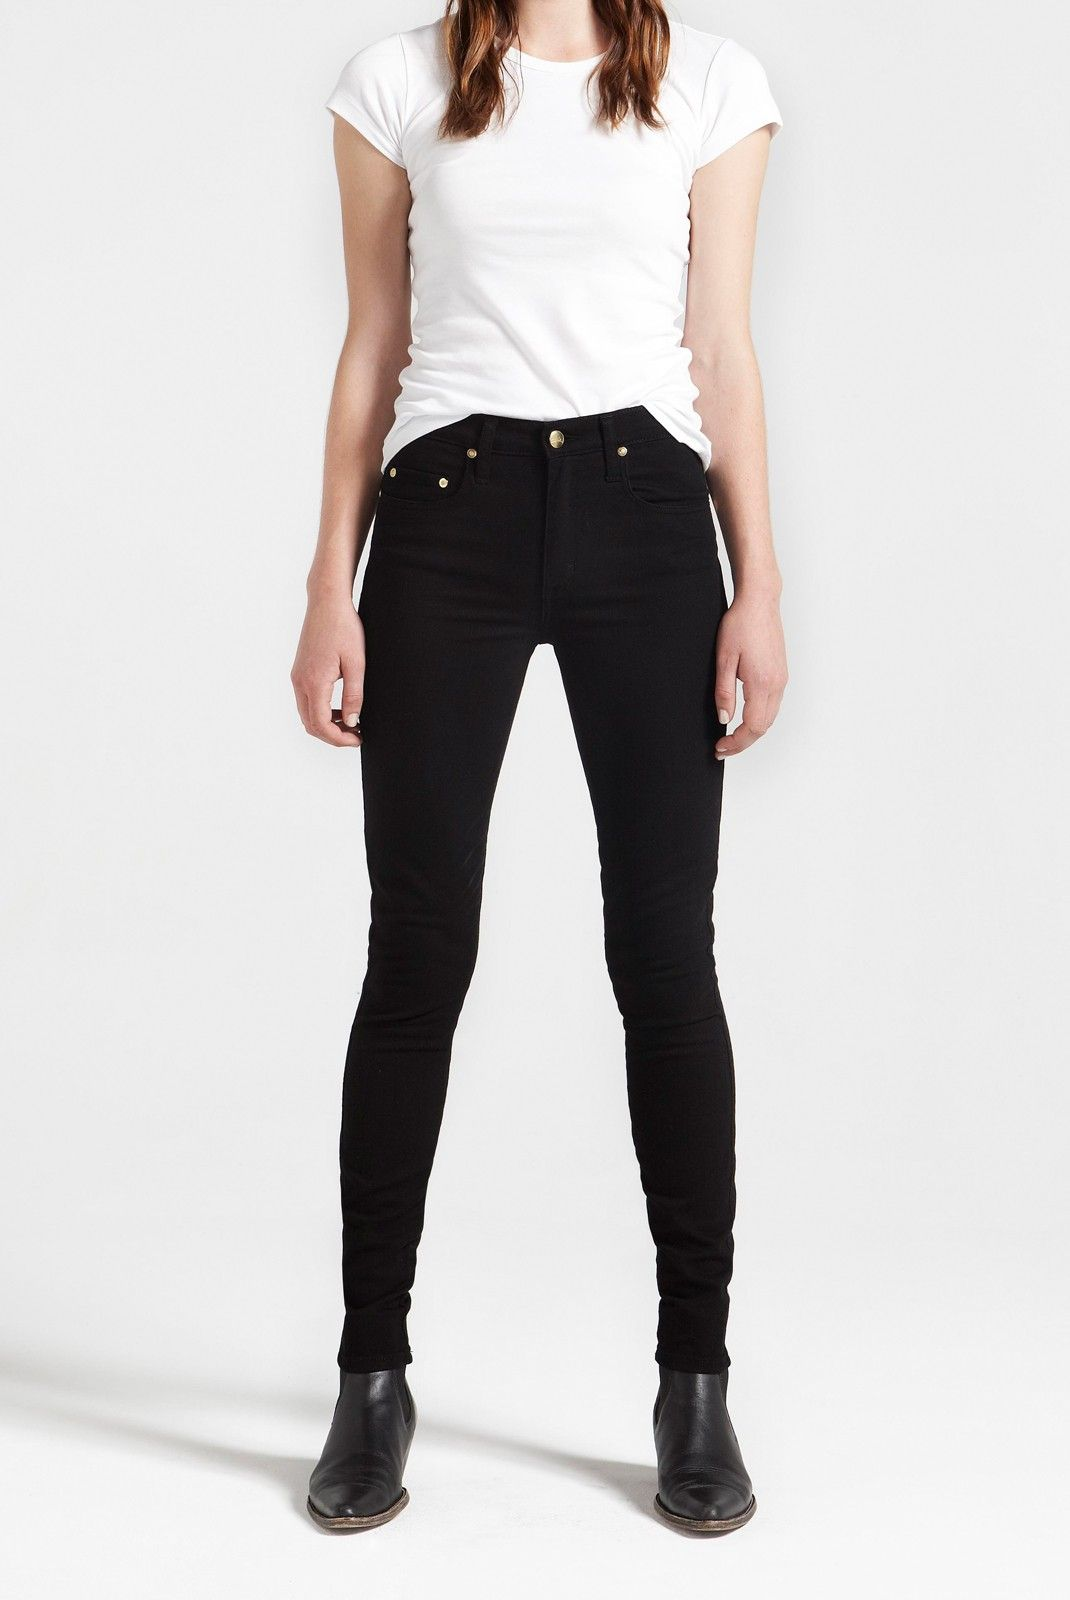 need a new pair of black skinnies for Winter - these are the perfect pair! Cult Skinny in Black by Nobody.